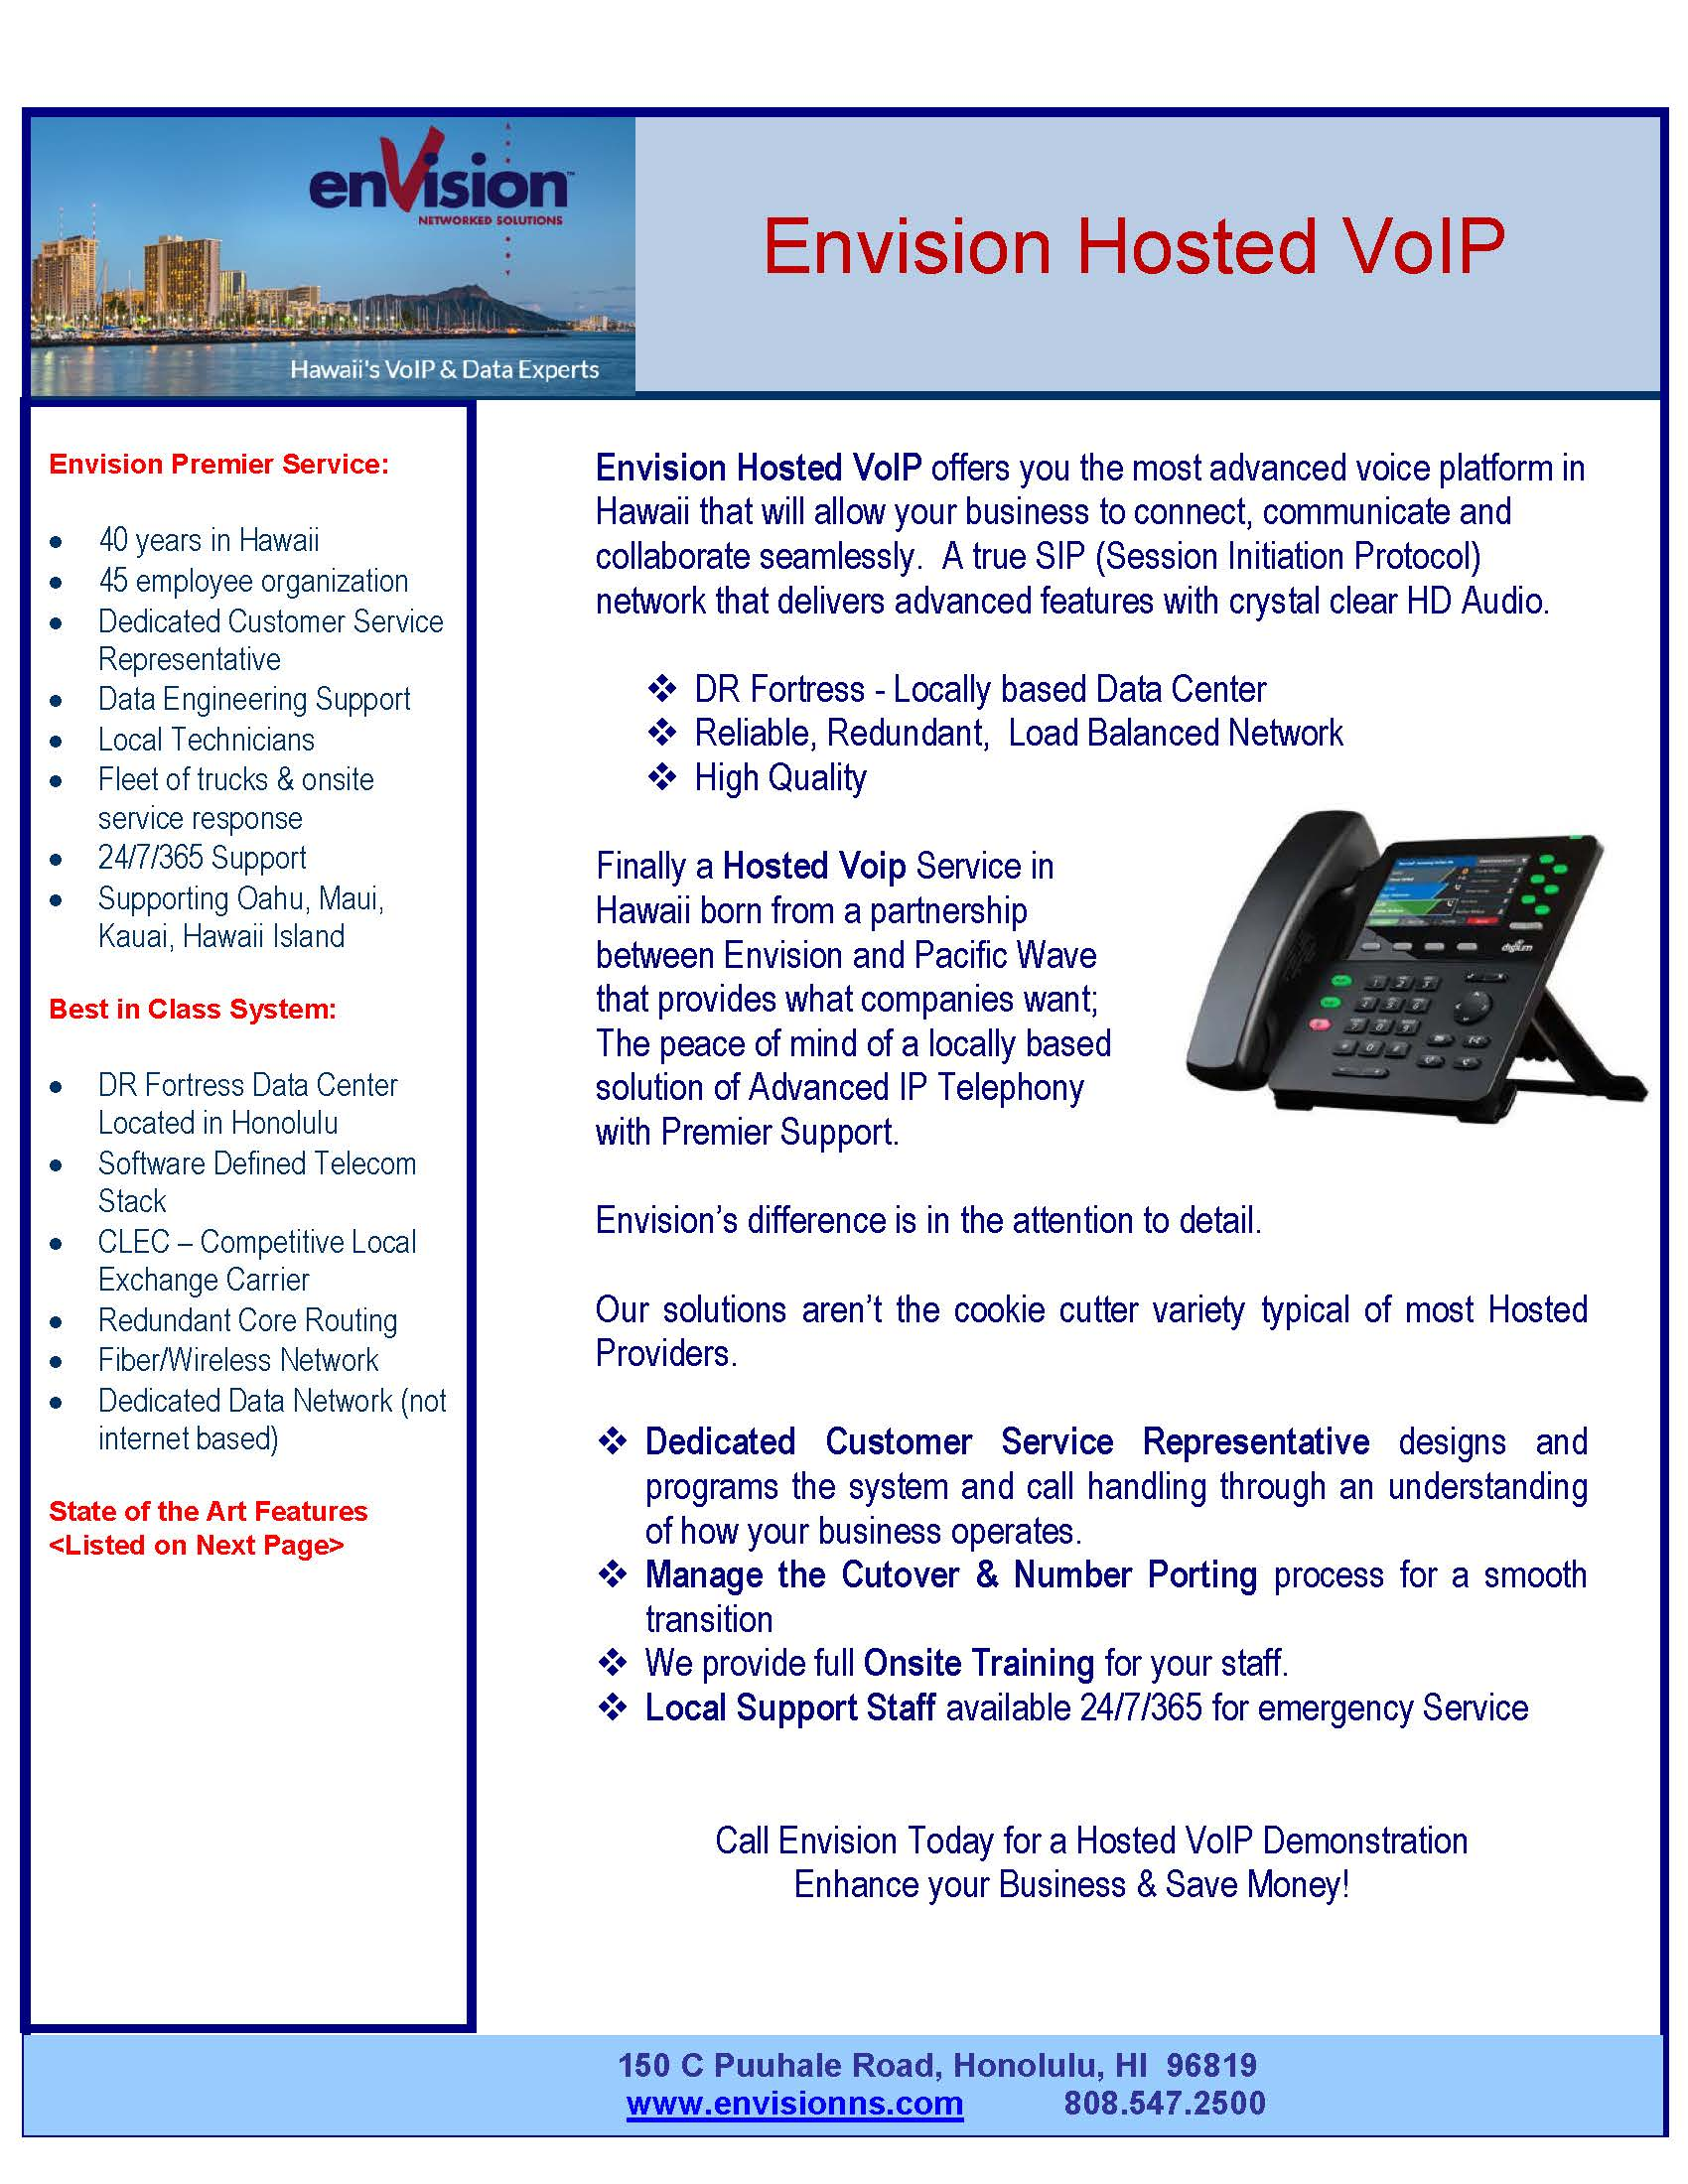 envision-hosted-voip